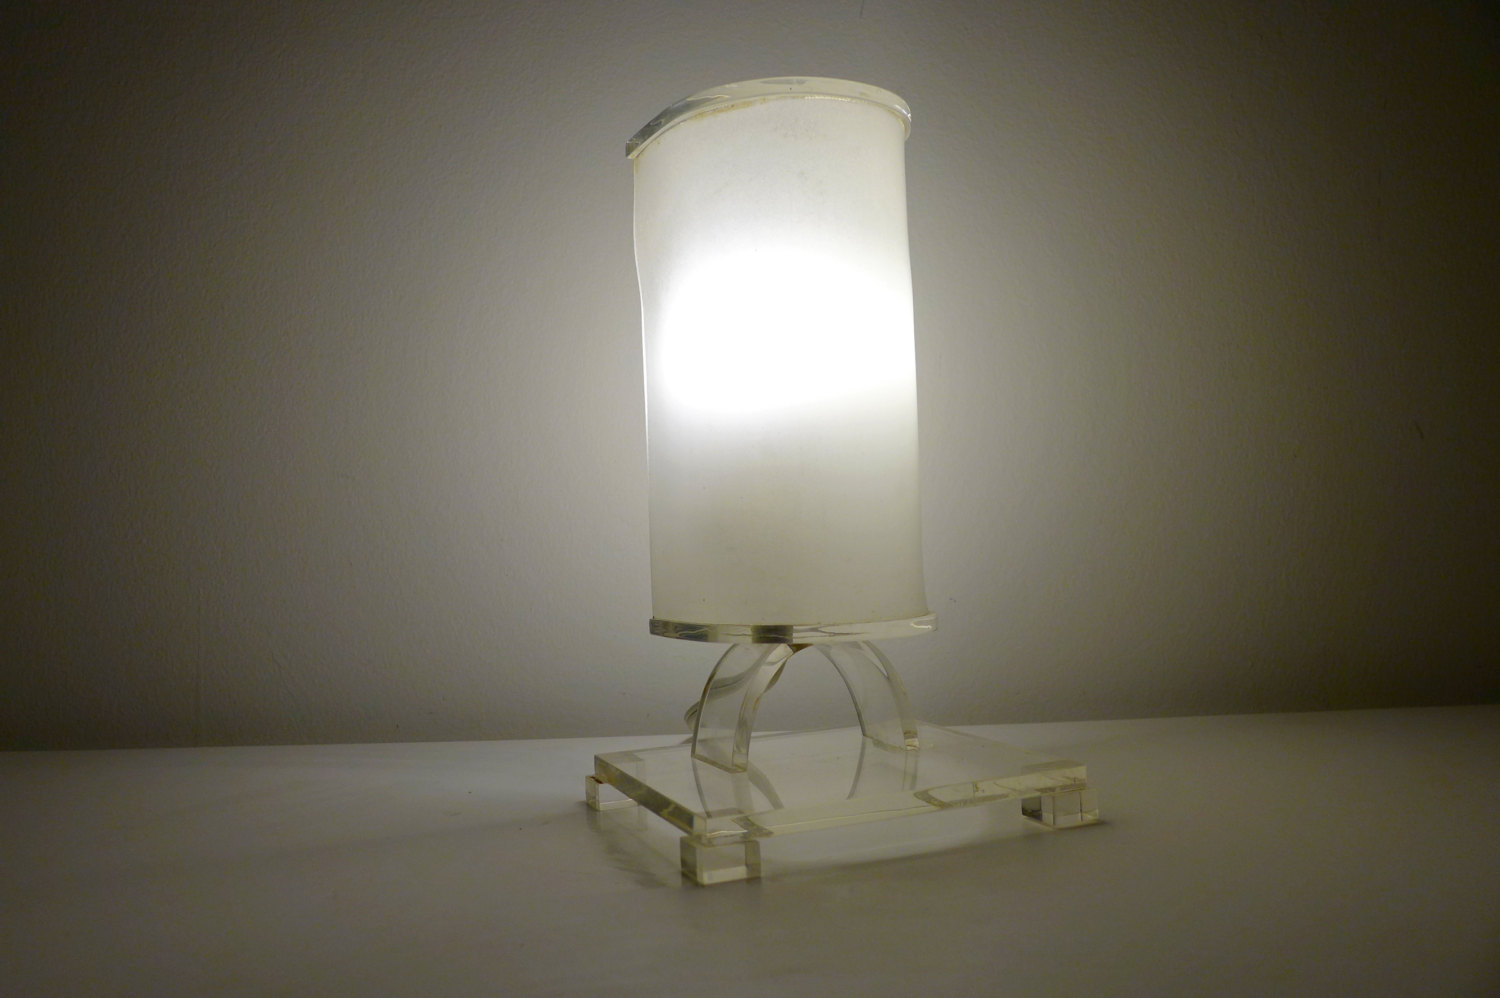 lucite accent lamp with frosted shade hollywood regency etsy fullxfull glass cylinder table marilyn monroe bedroom decor yellow chair nautical kitchen pendant lights hardwood legs